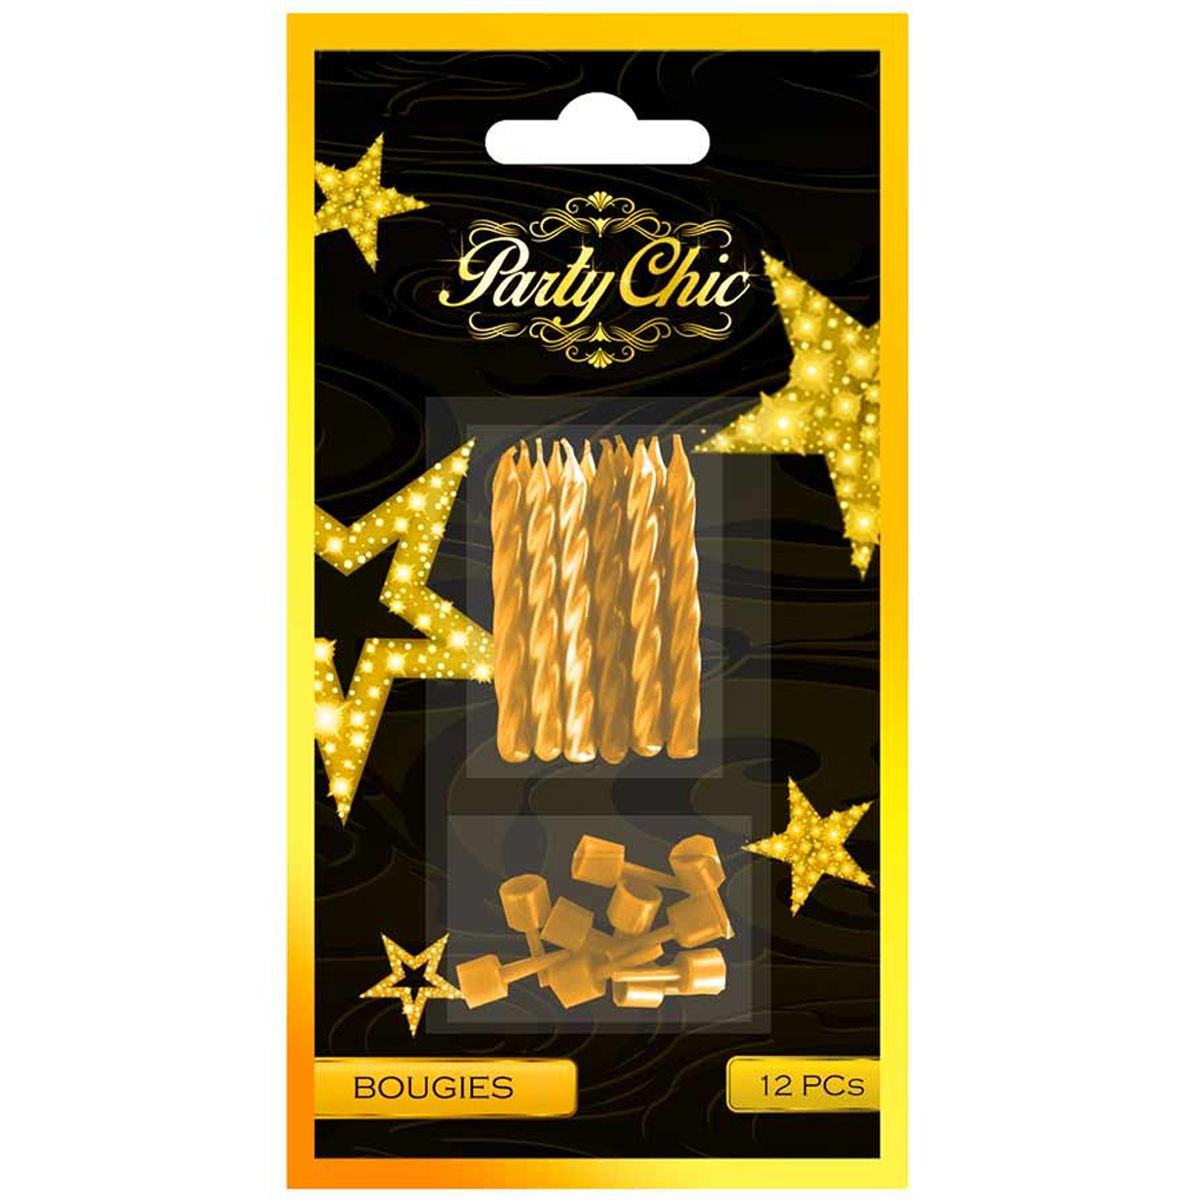 12 bougies \'Party Chic\' doré - 5 cm - [Q4123]